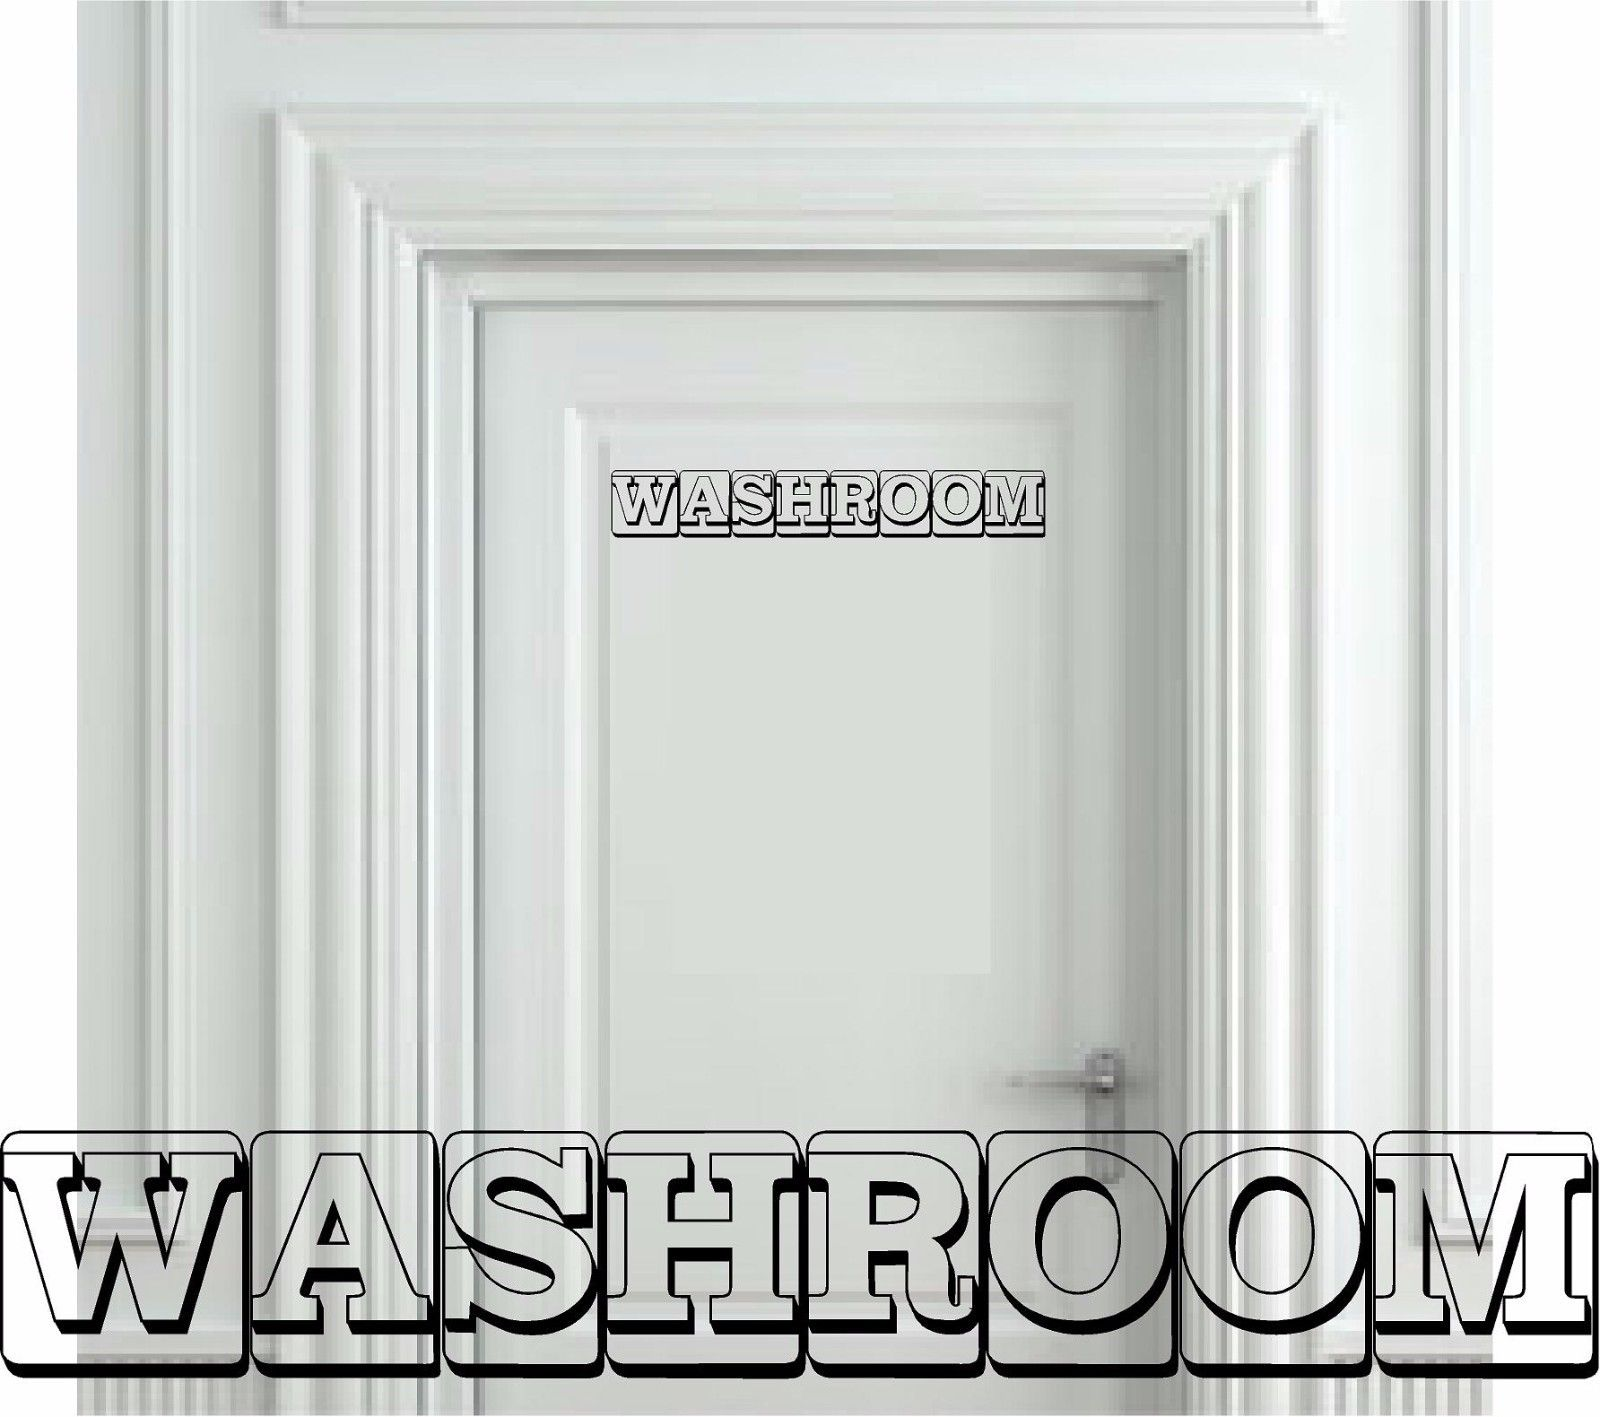 Washroom Bathroom Building Blocks Wall Decal Cute Funny Room Guests Bath vinyl sticker ...